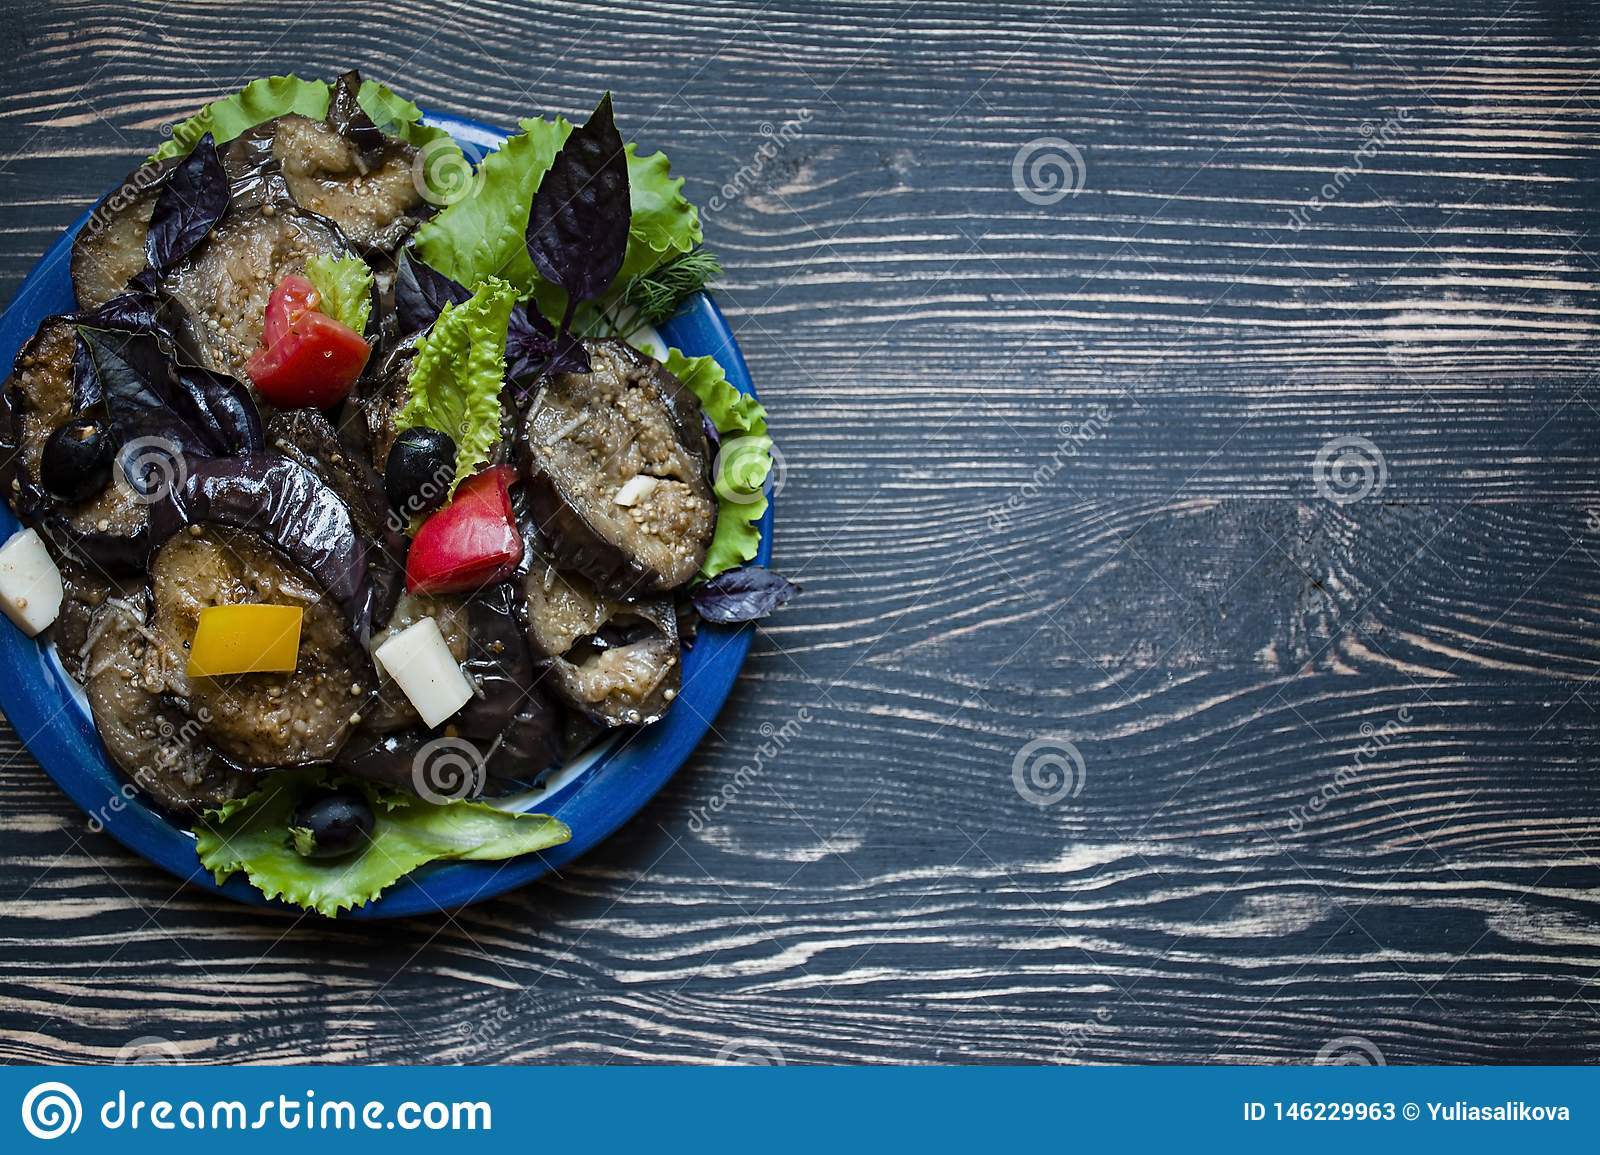 Fried eggplant with fresh salad and spices